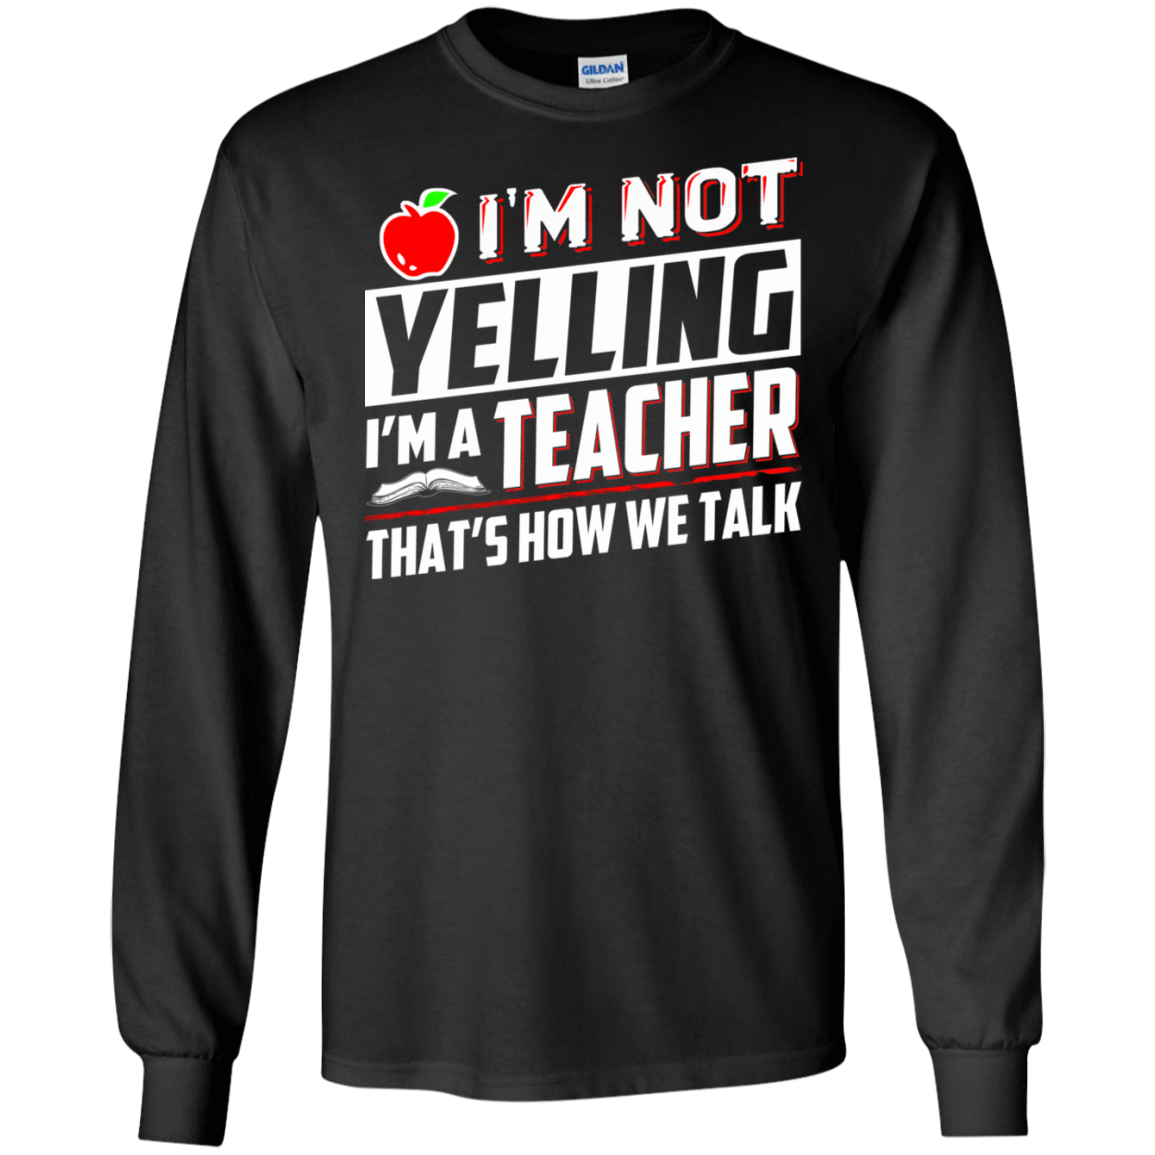 I'm Not Yelling I'm A Teacher That's How We Talk 30-186-72789328-333 - Tee Ript